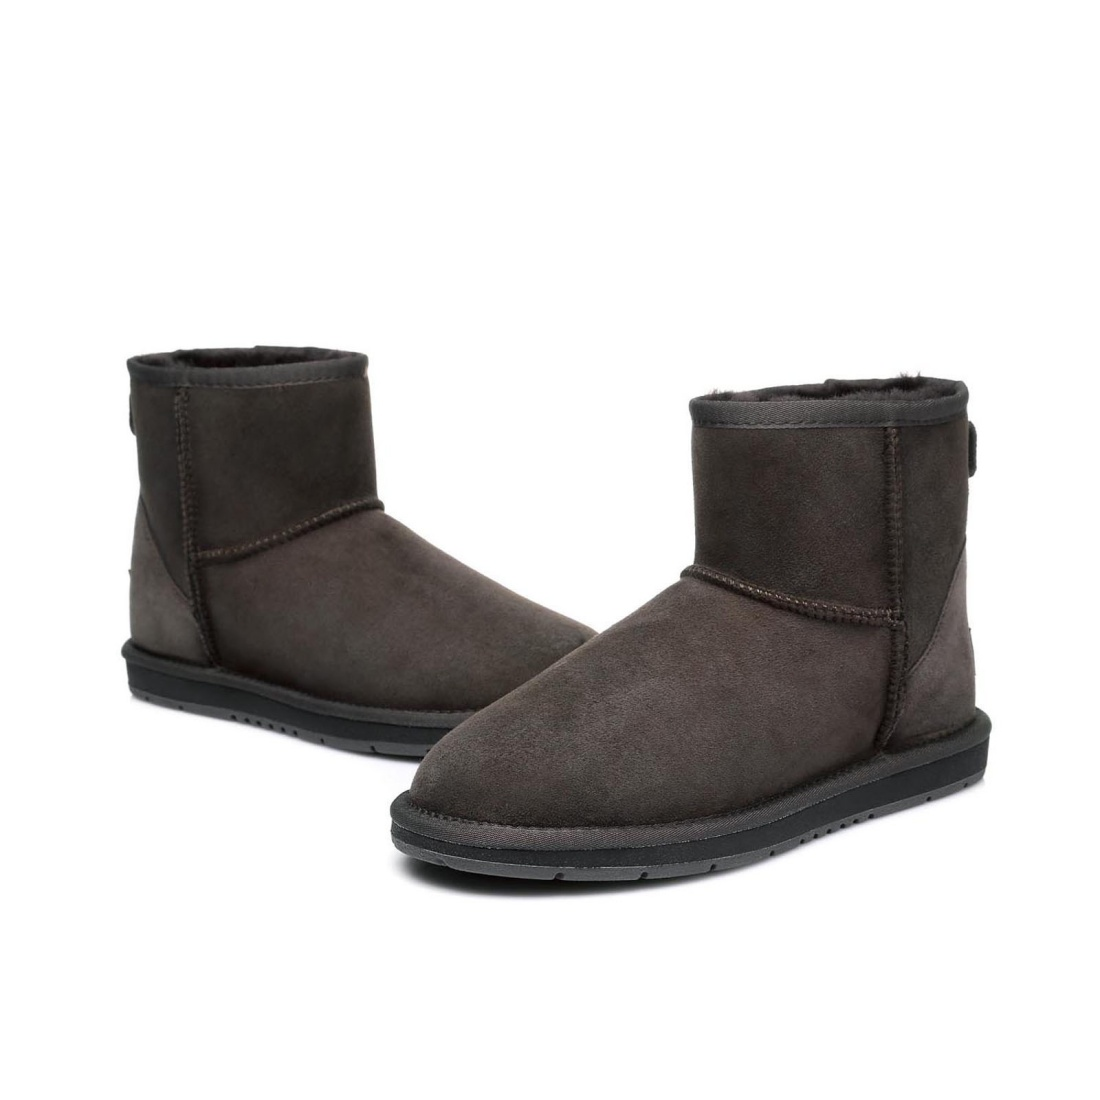 UGG Ankle Boots Mini - Chocolate - AU Women 4 / Men 2